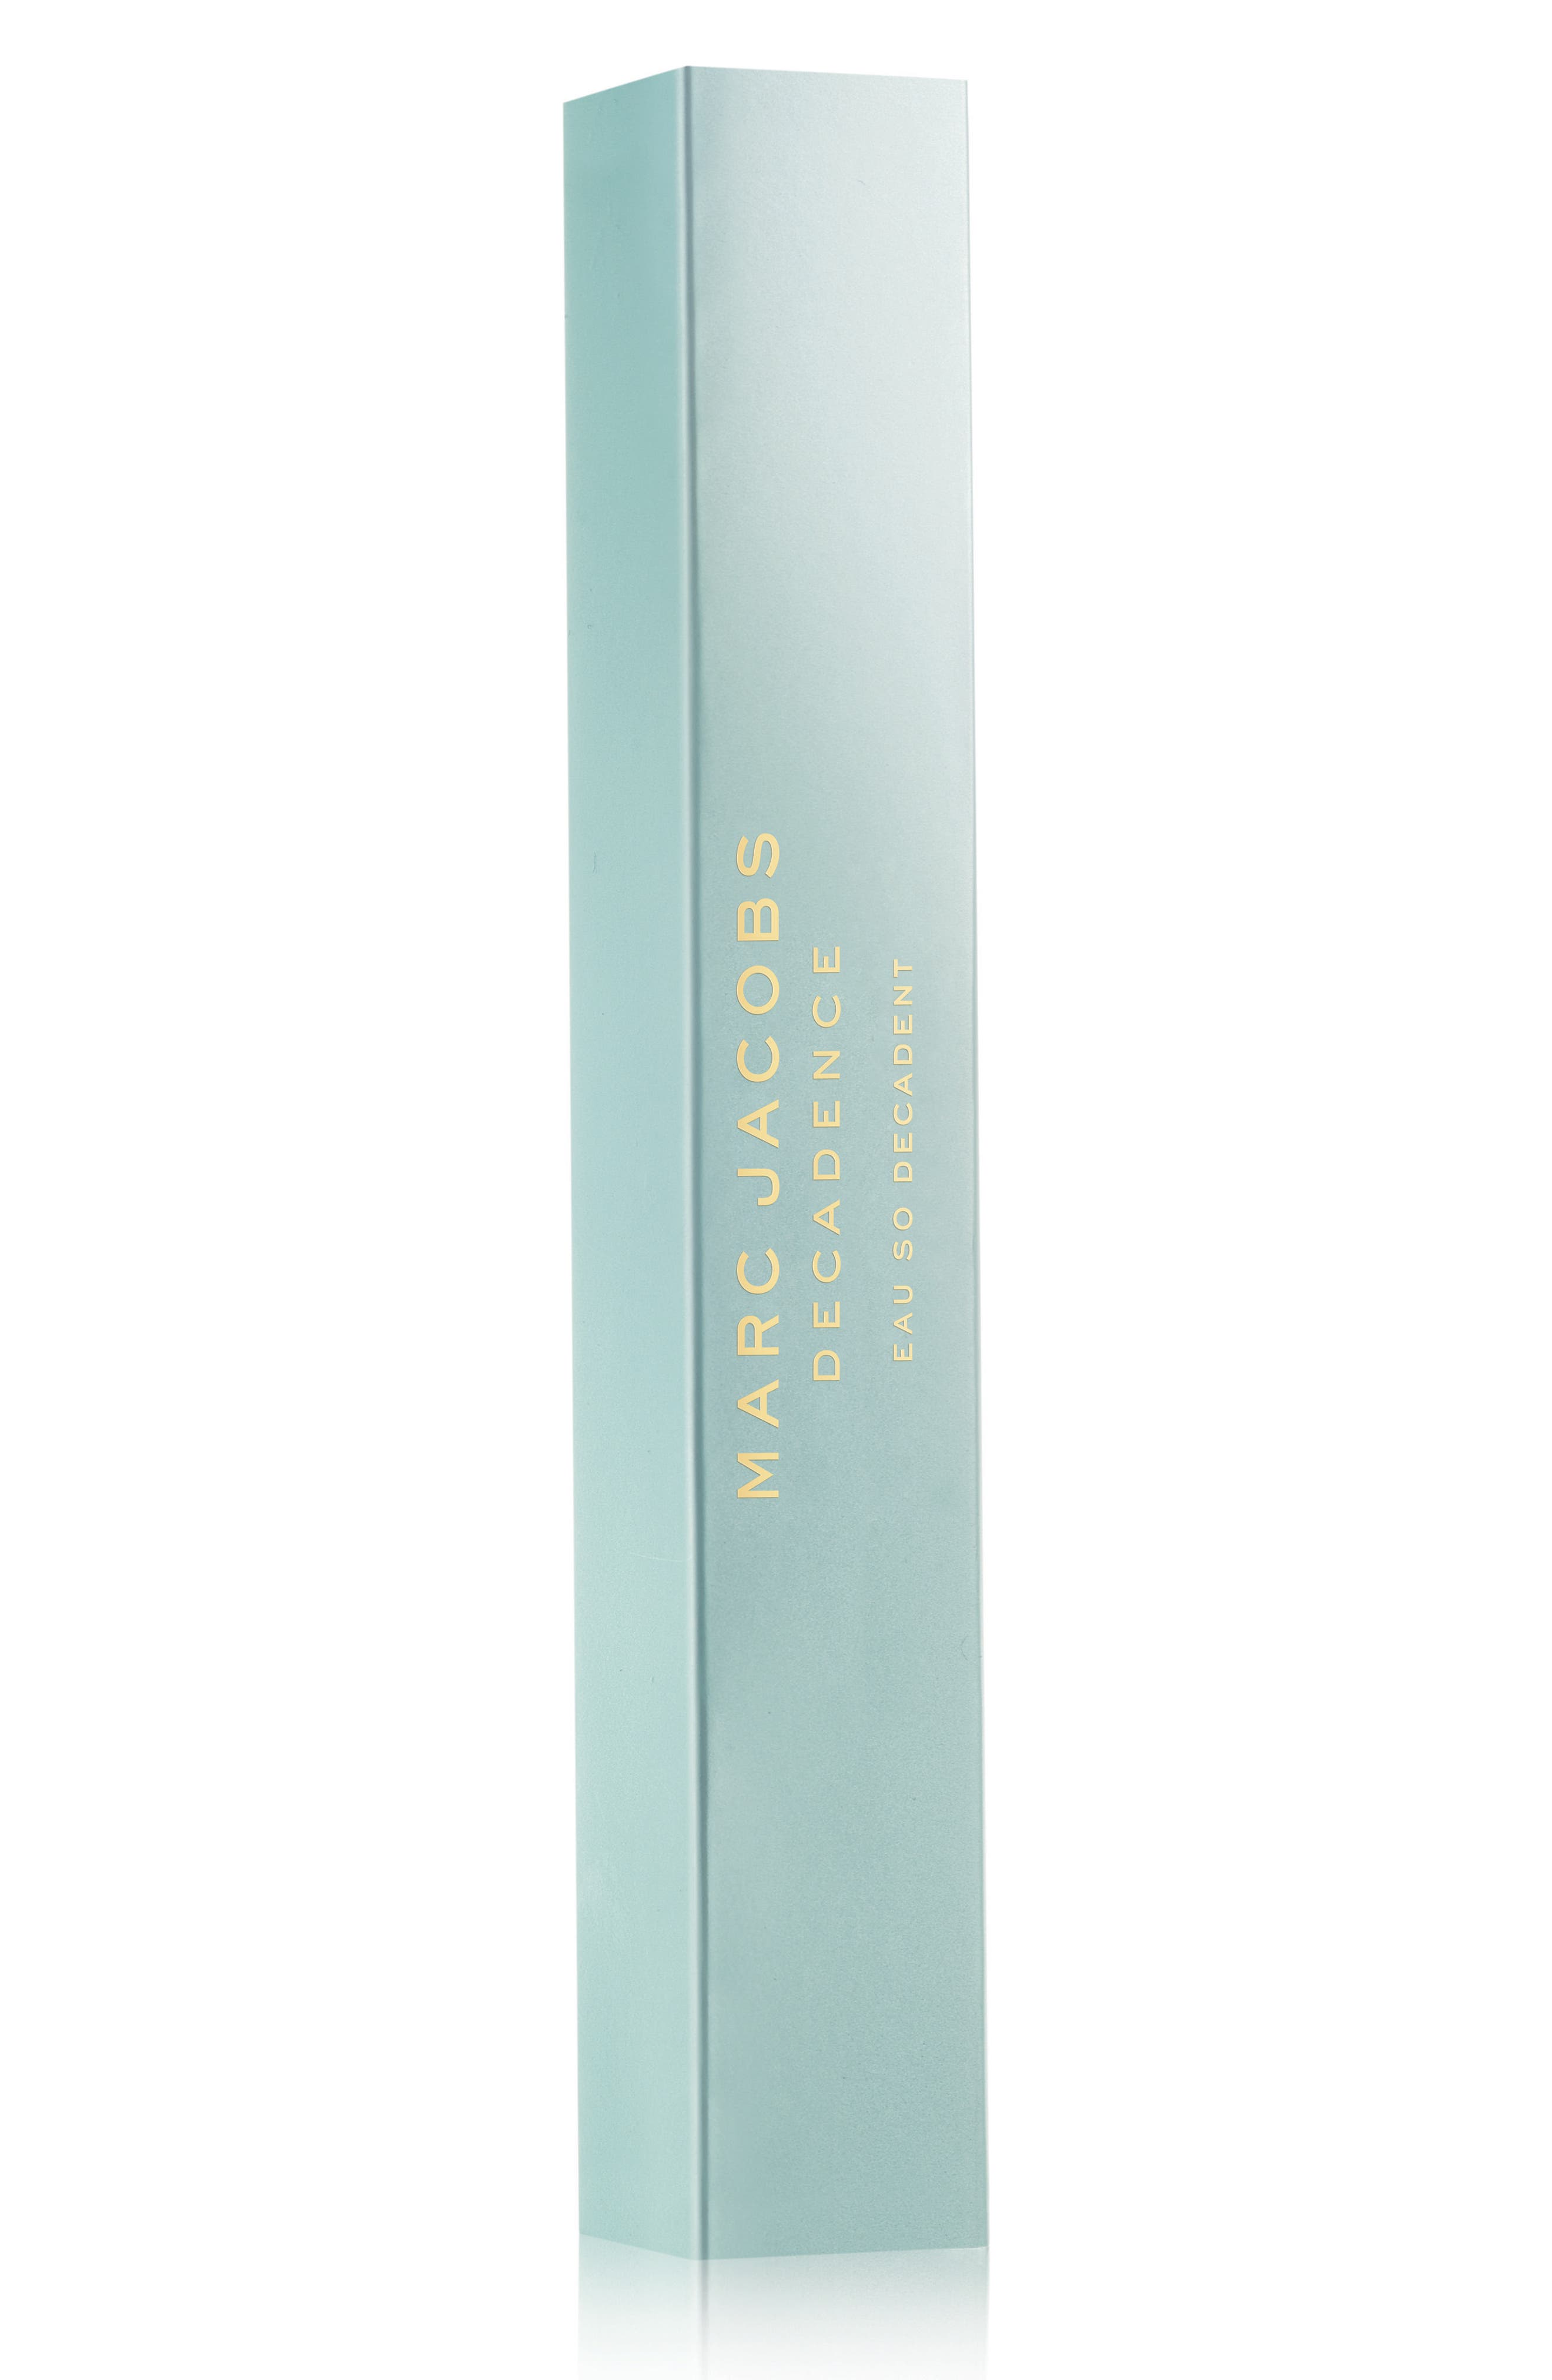 Alternate Image 3  - MARC JACOBS Eau so Decadent Eau de Toilette Rollerball